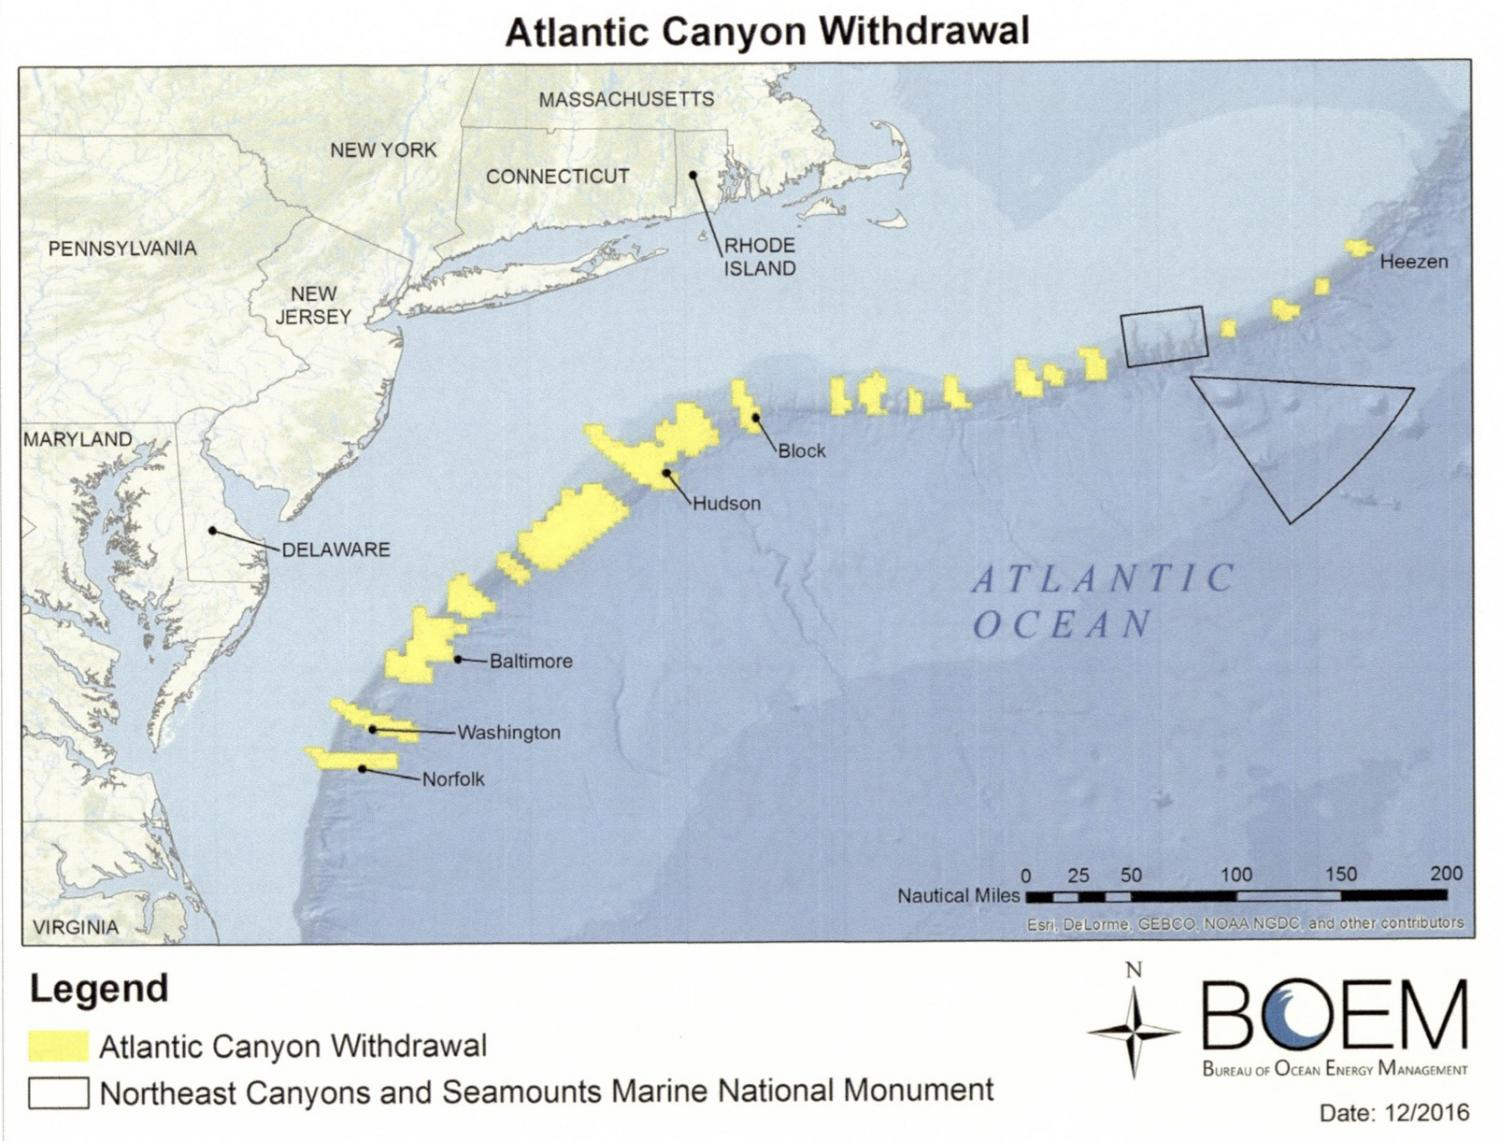 Obamas permanent Atlantic drilling ban excludes most of the